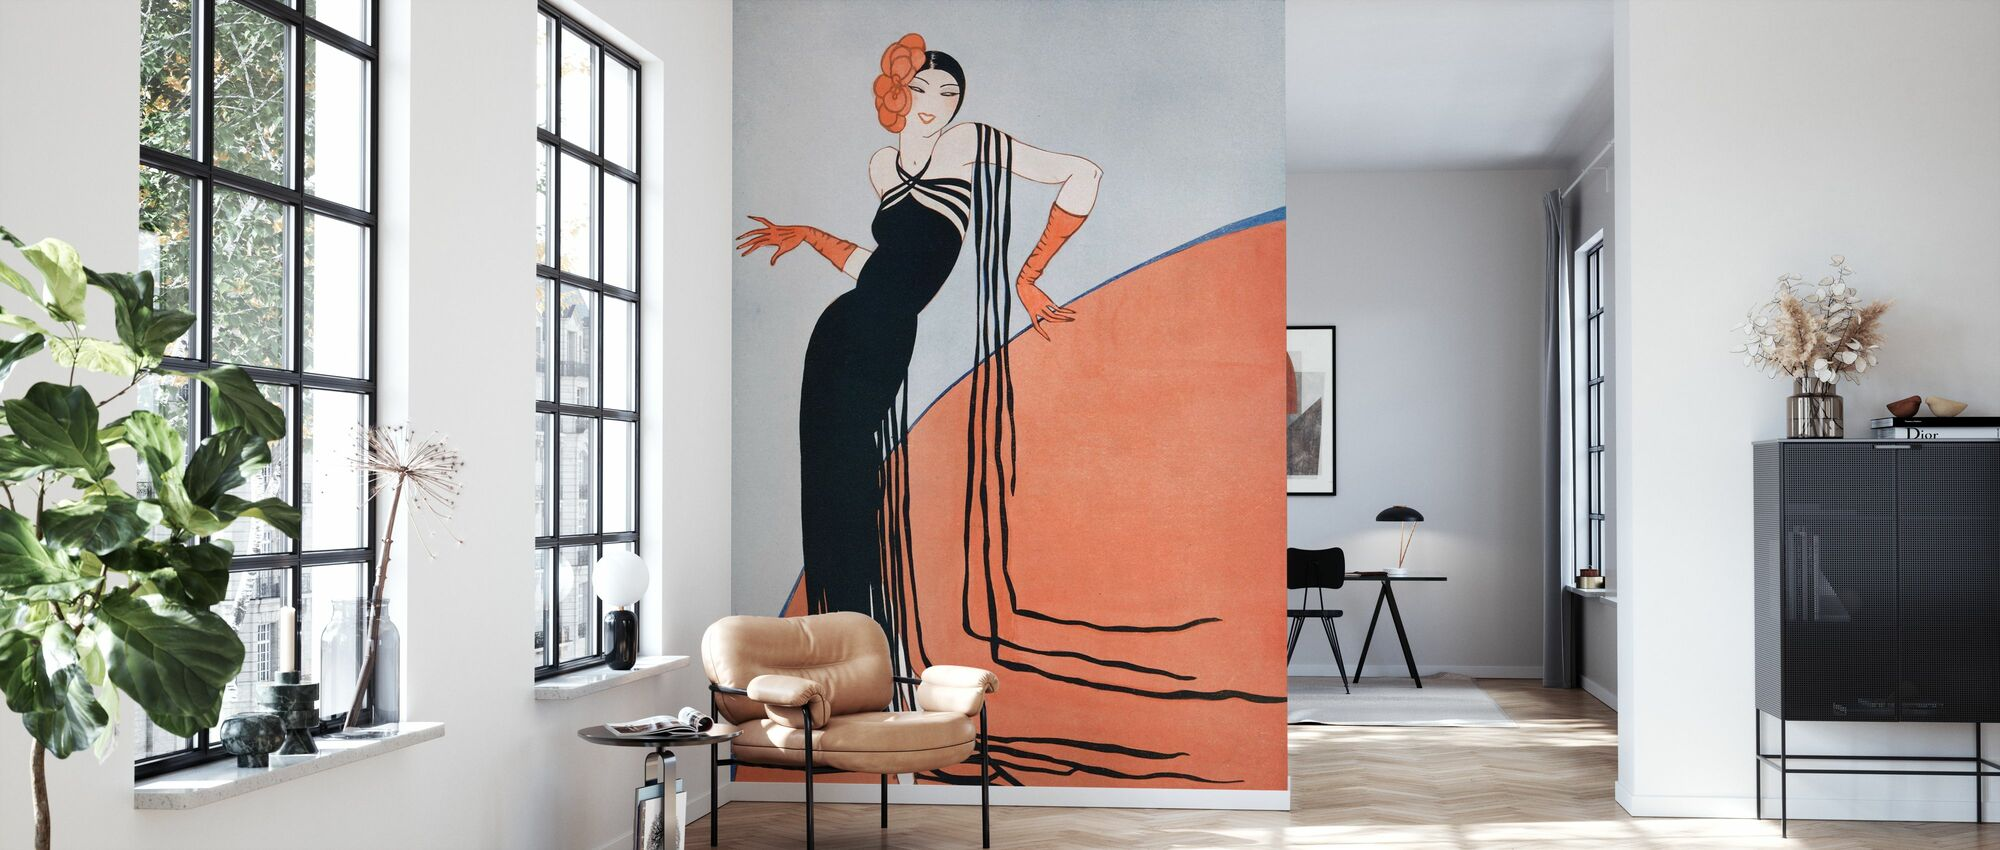 Spanish lady, Gordon Conway - Wallpaper - Living Room